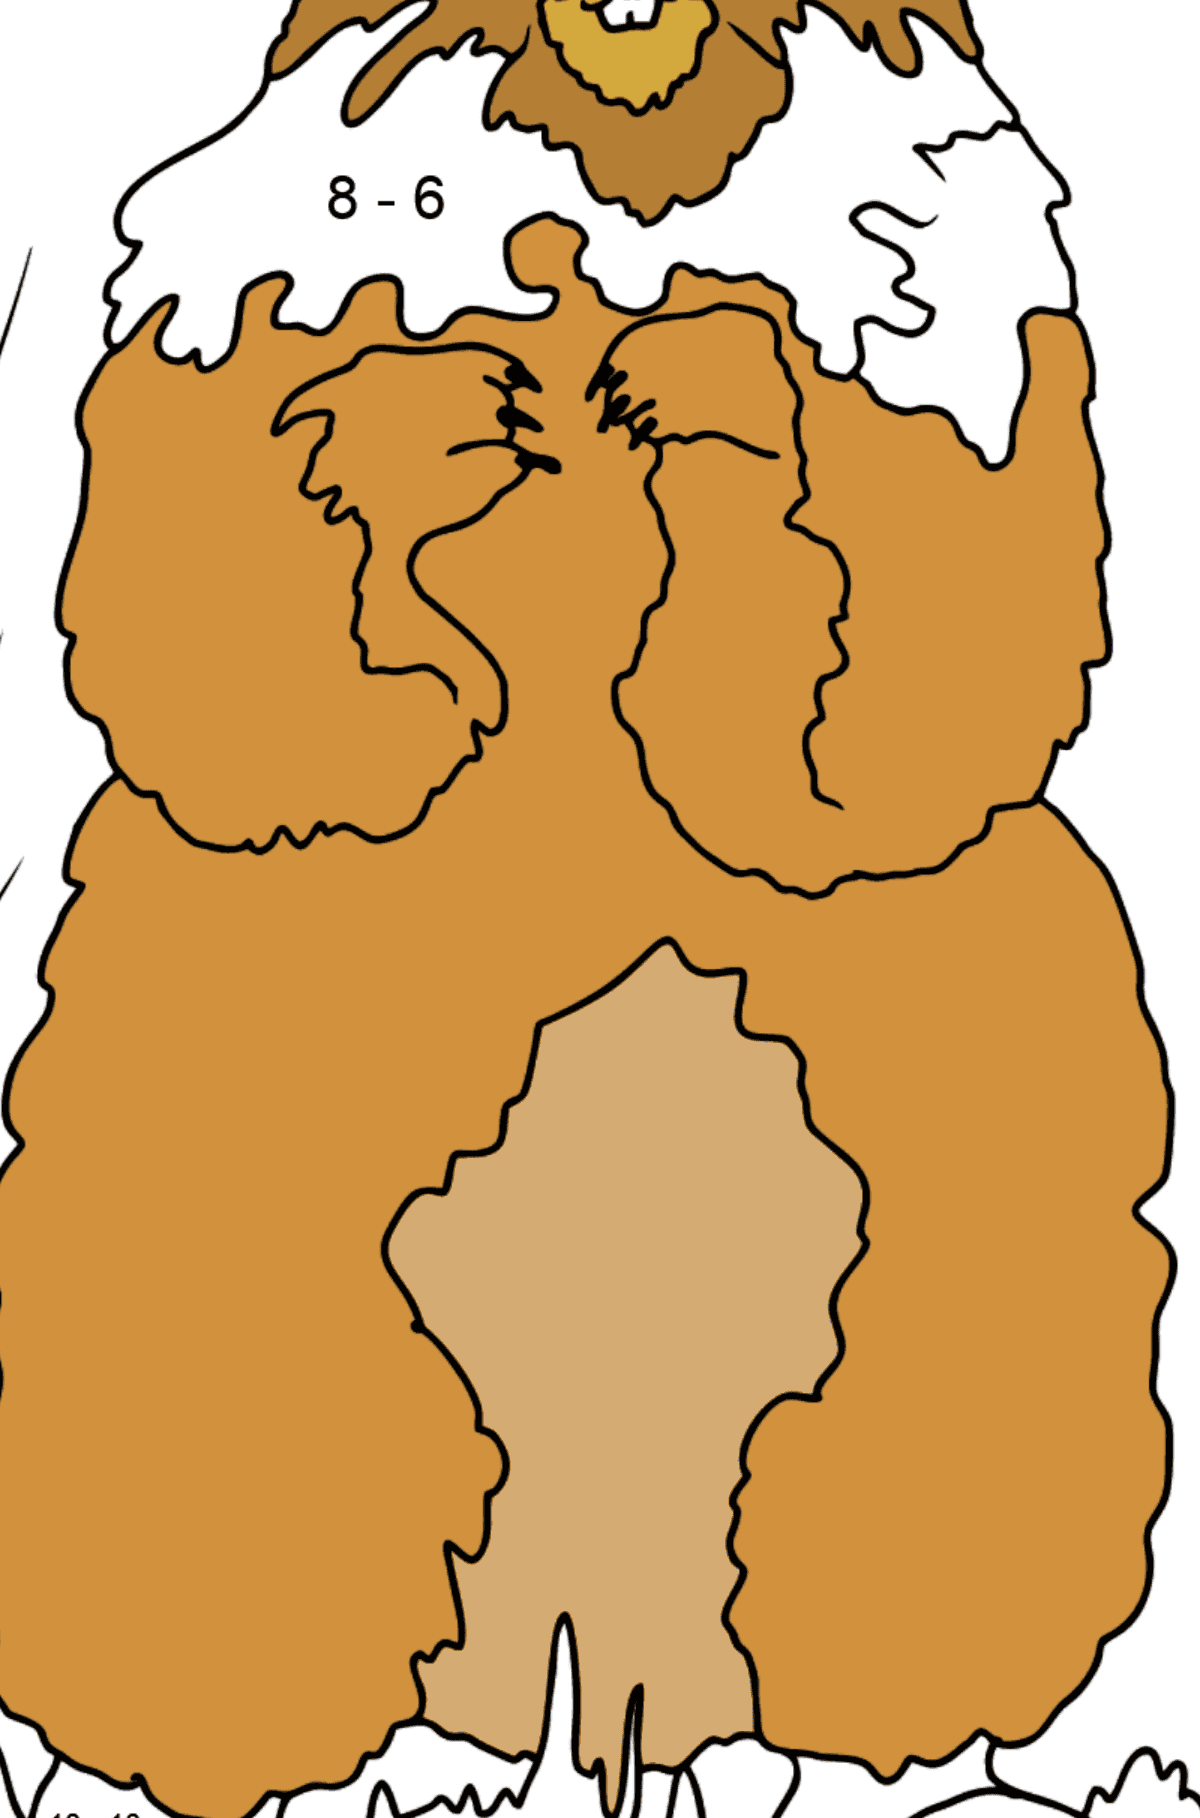 Coloring Page - A Groundhog is Looking Around - Math Coloring - Subtraction for Kids